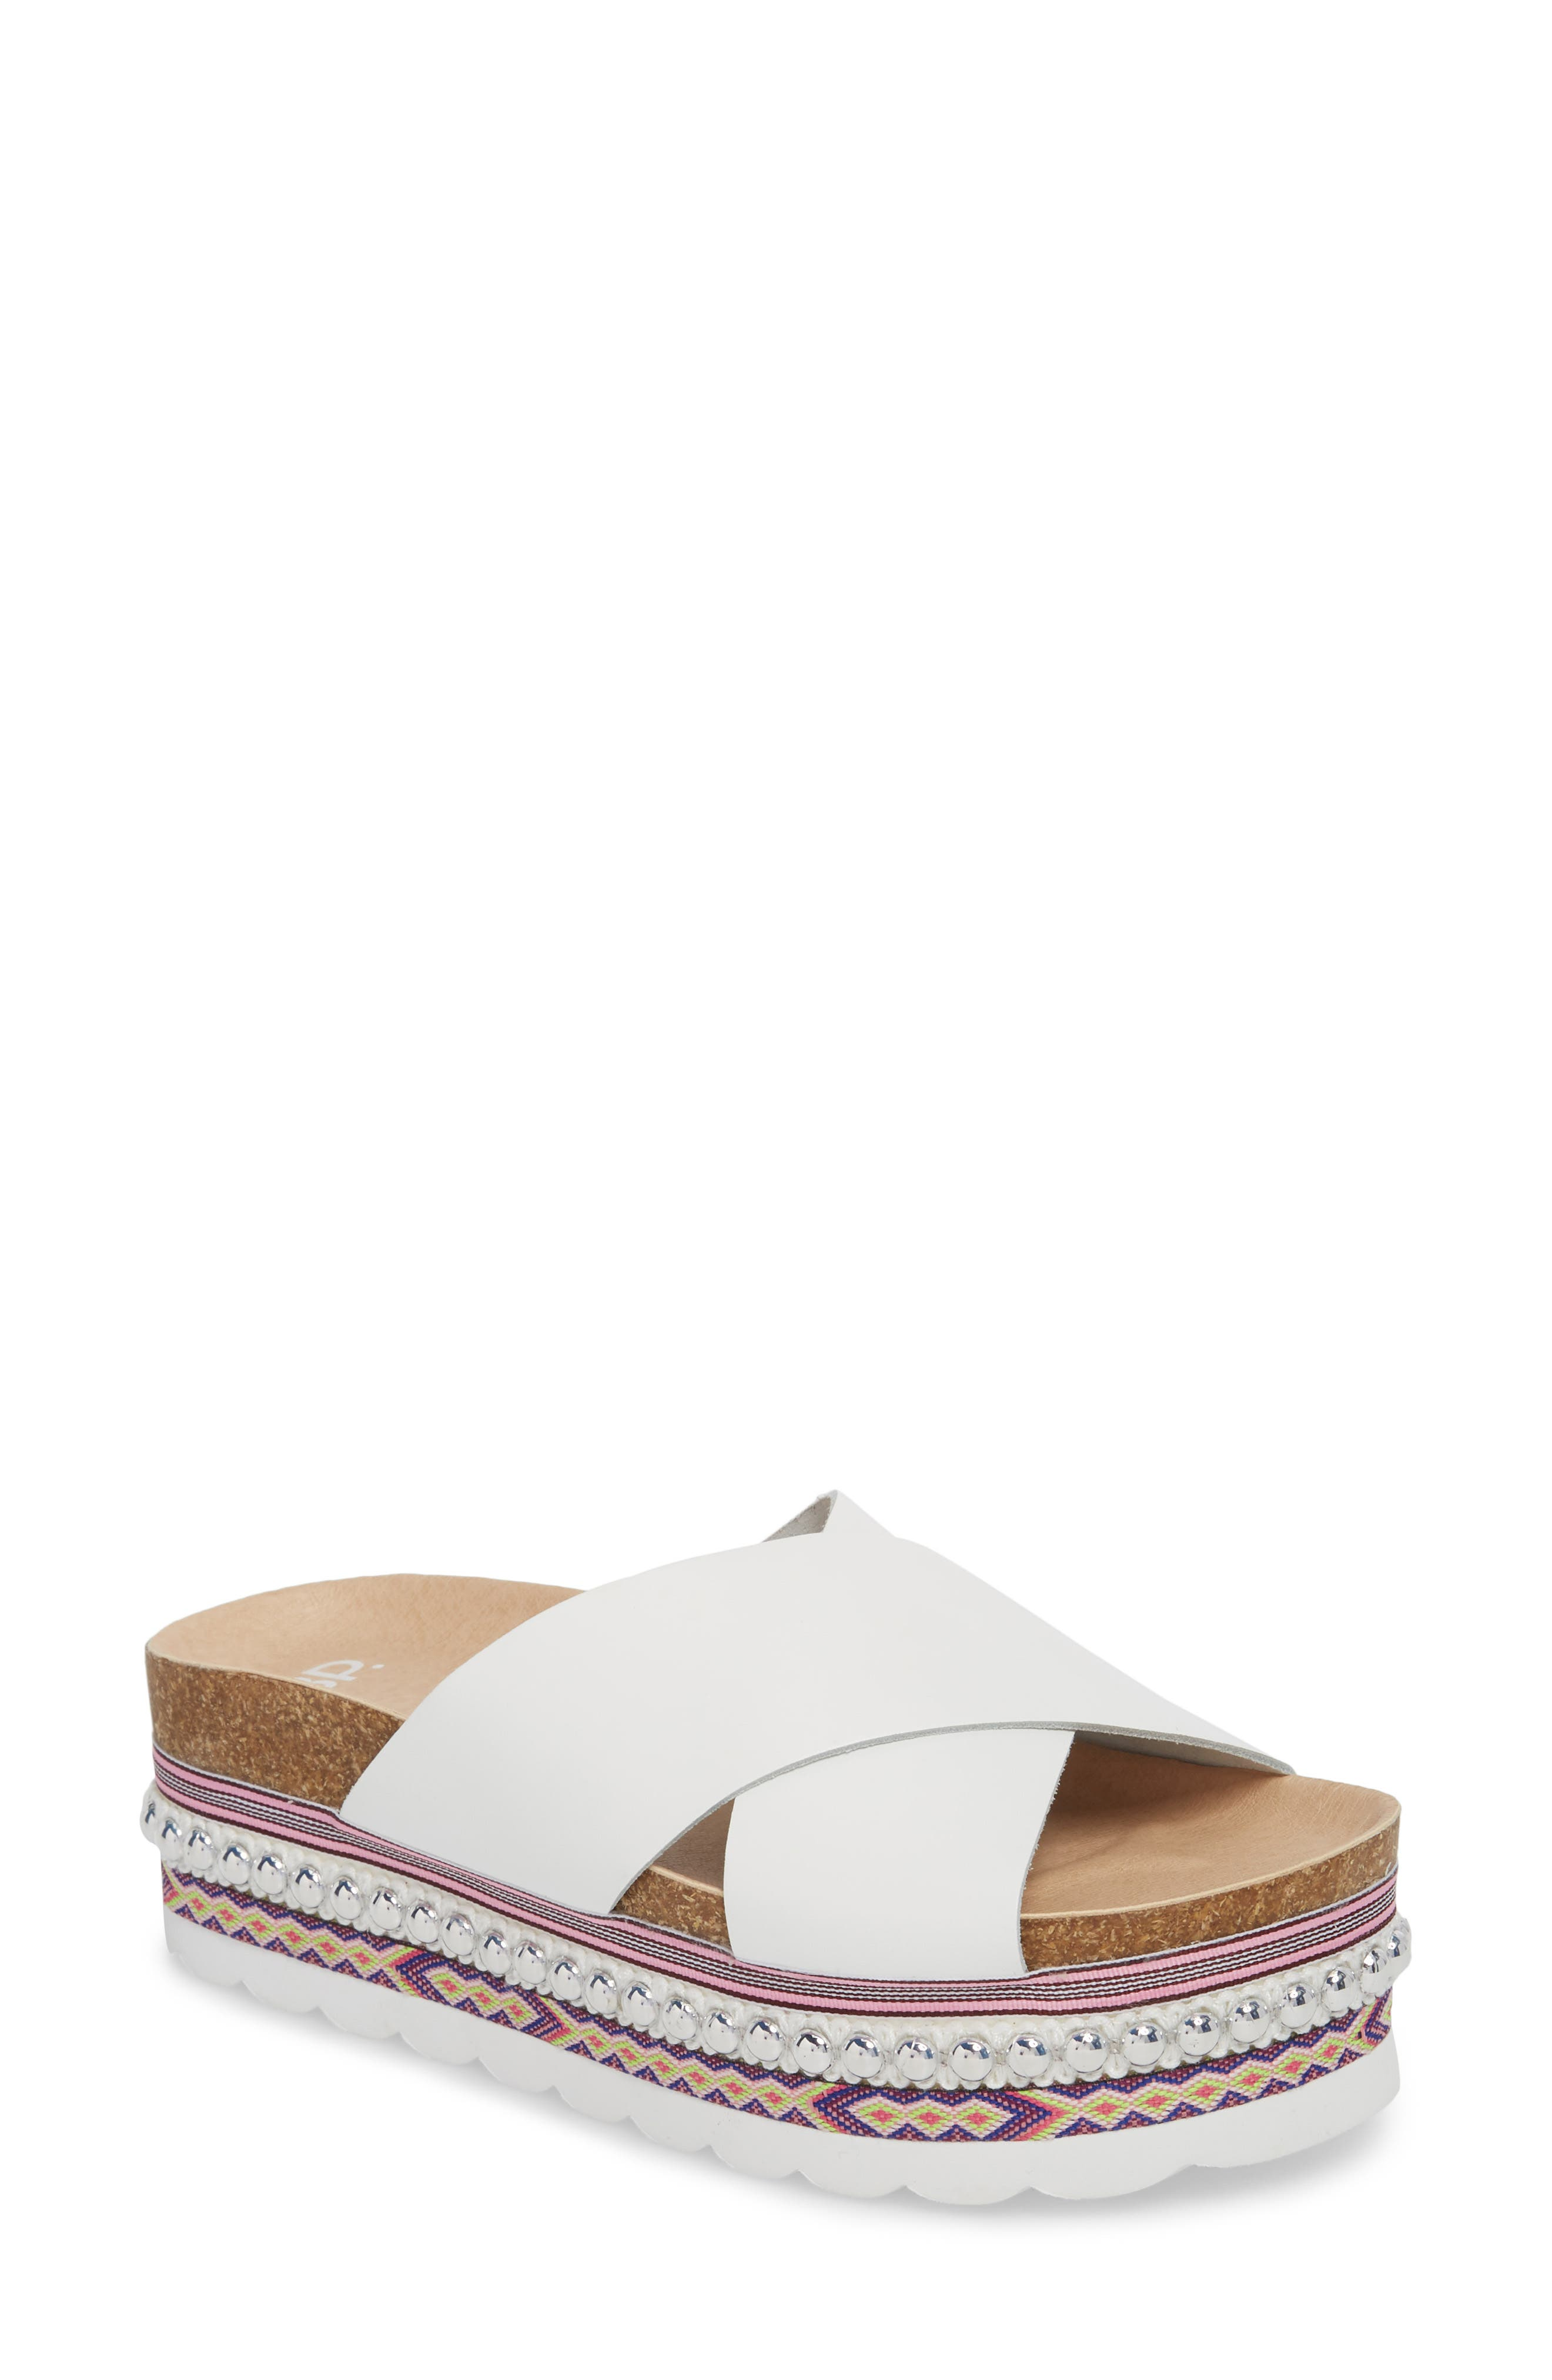 Torri Platform Slide Sandal,                             Main thumbnail 1, color,                             WHITE LEATHER